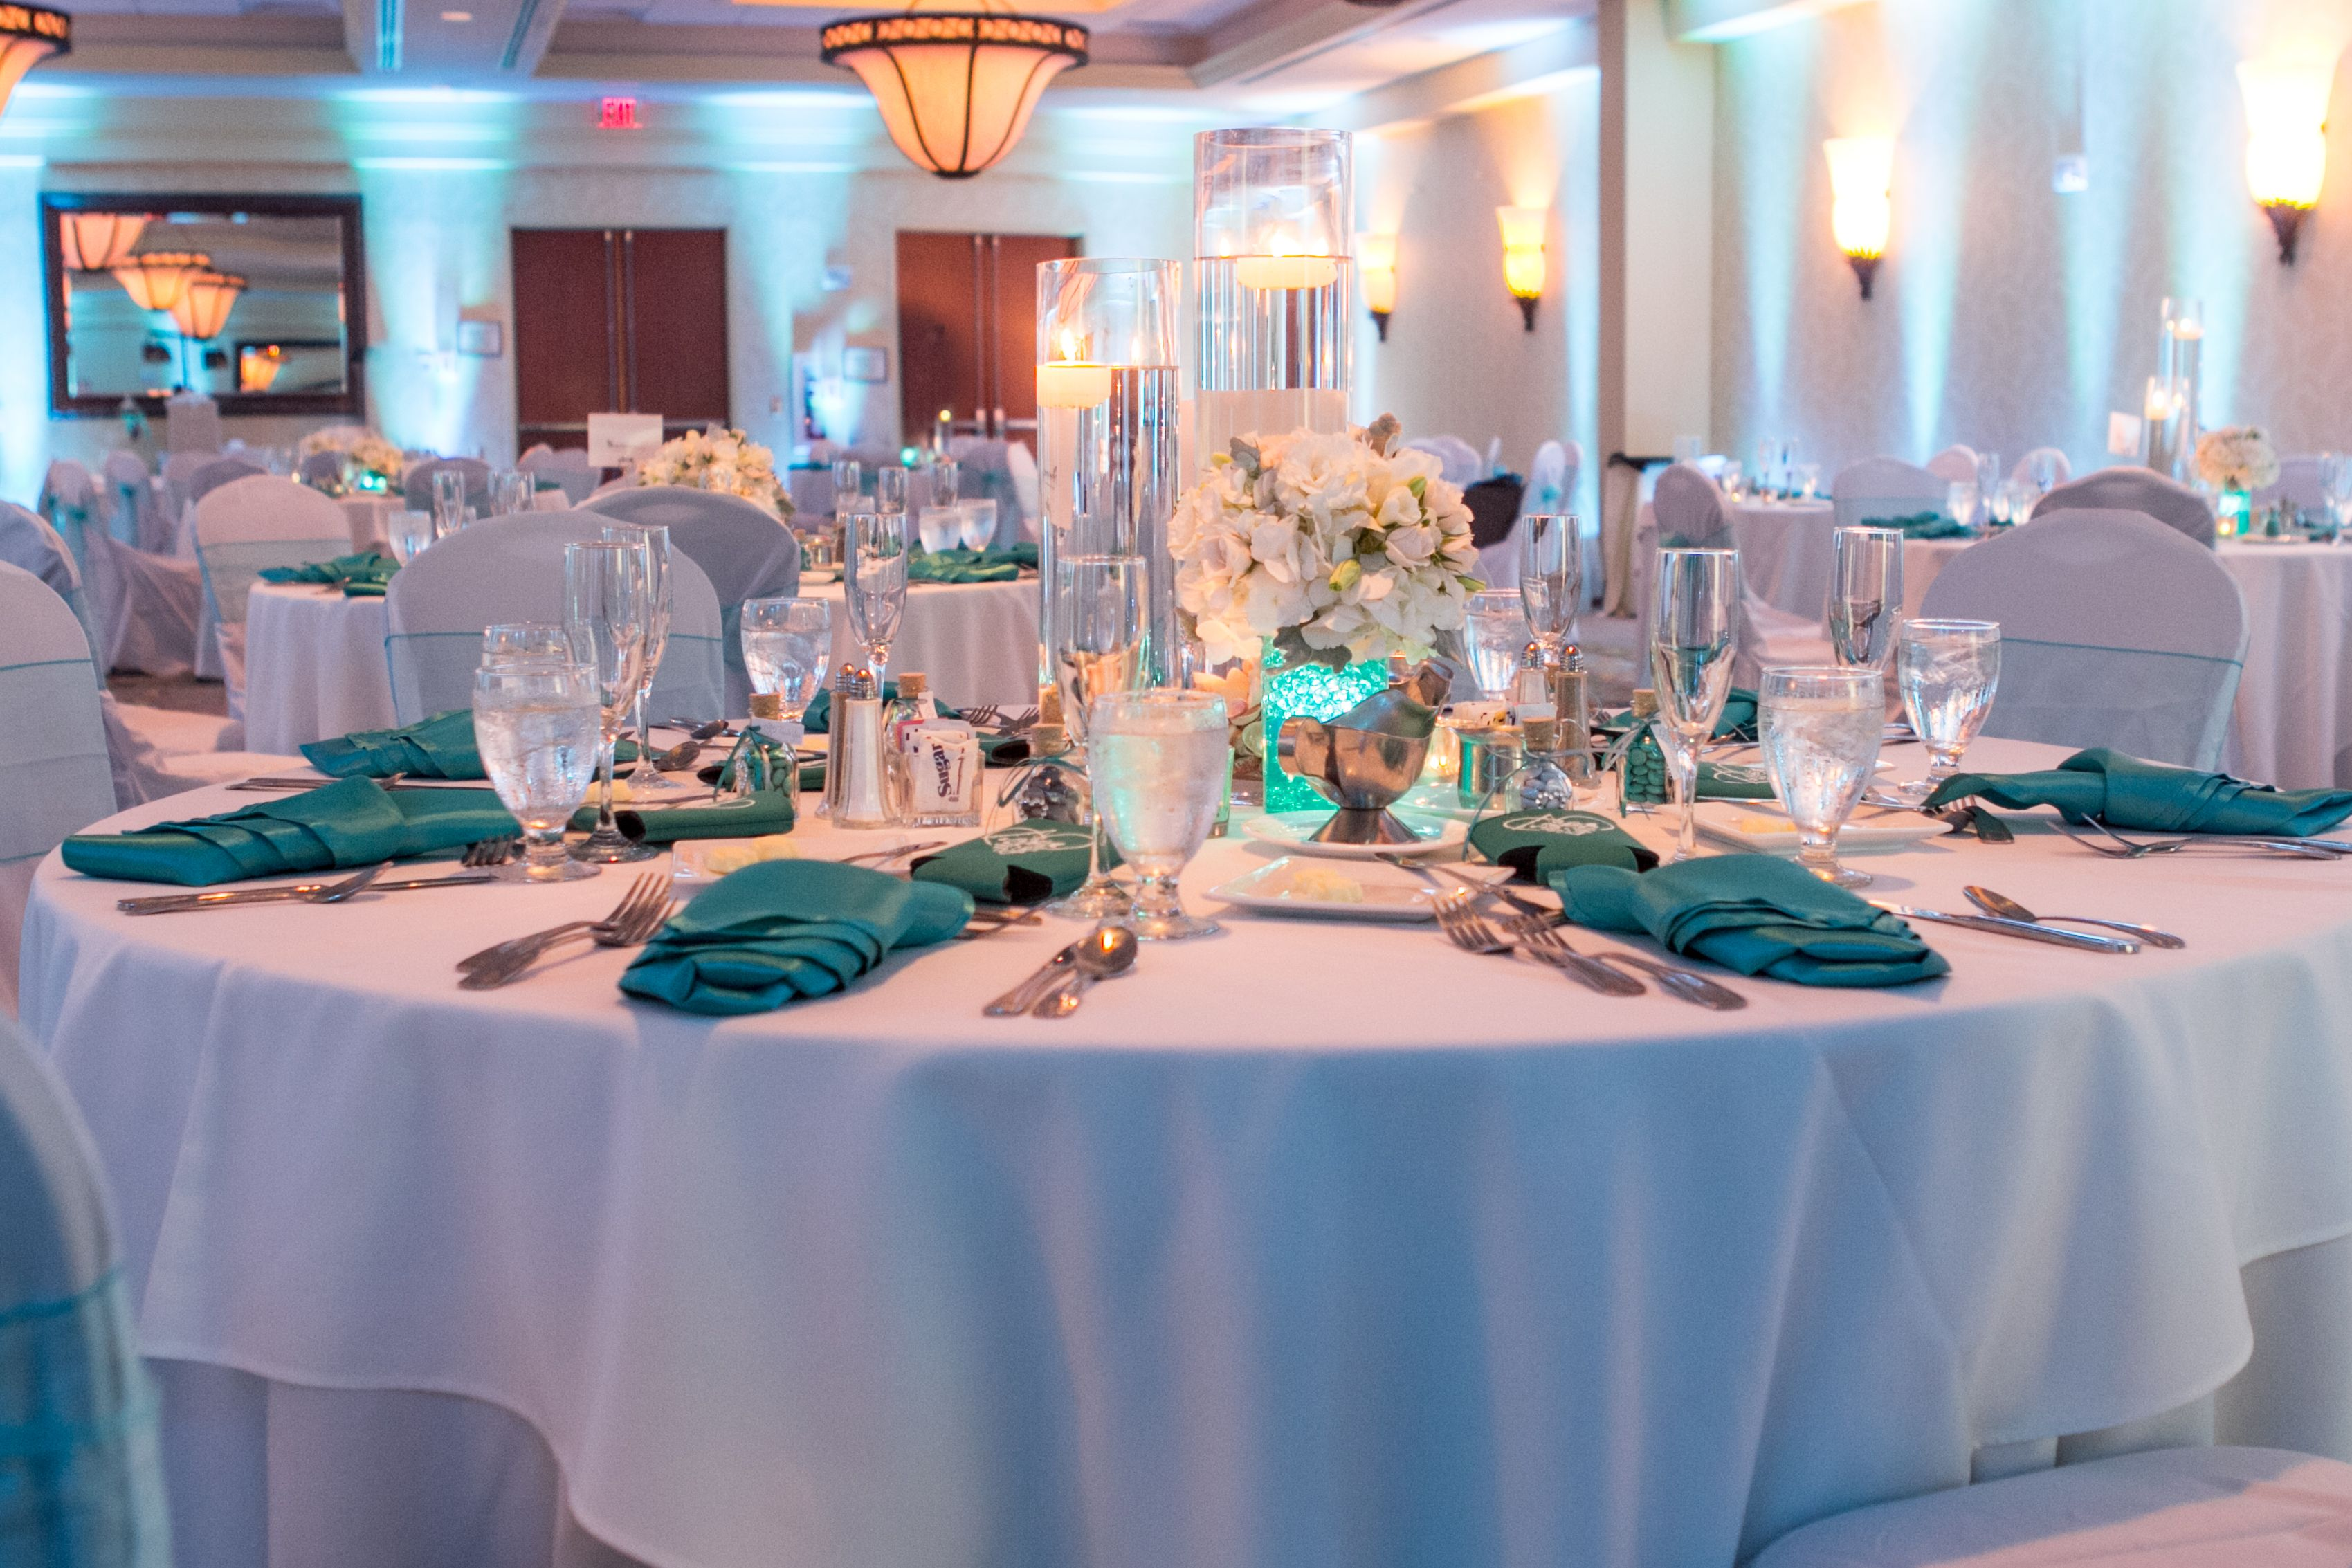 Tiffany Blue Weddinglove Aqua Napkins With Light And Everything Else White